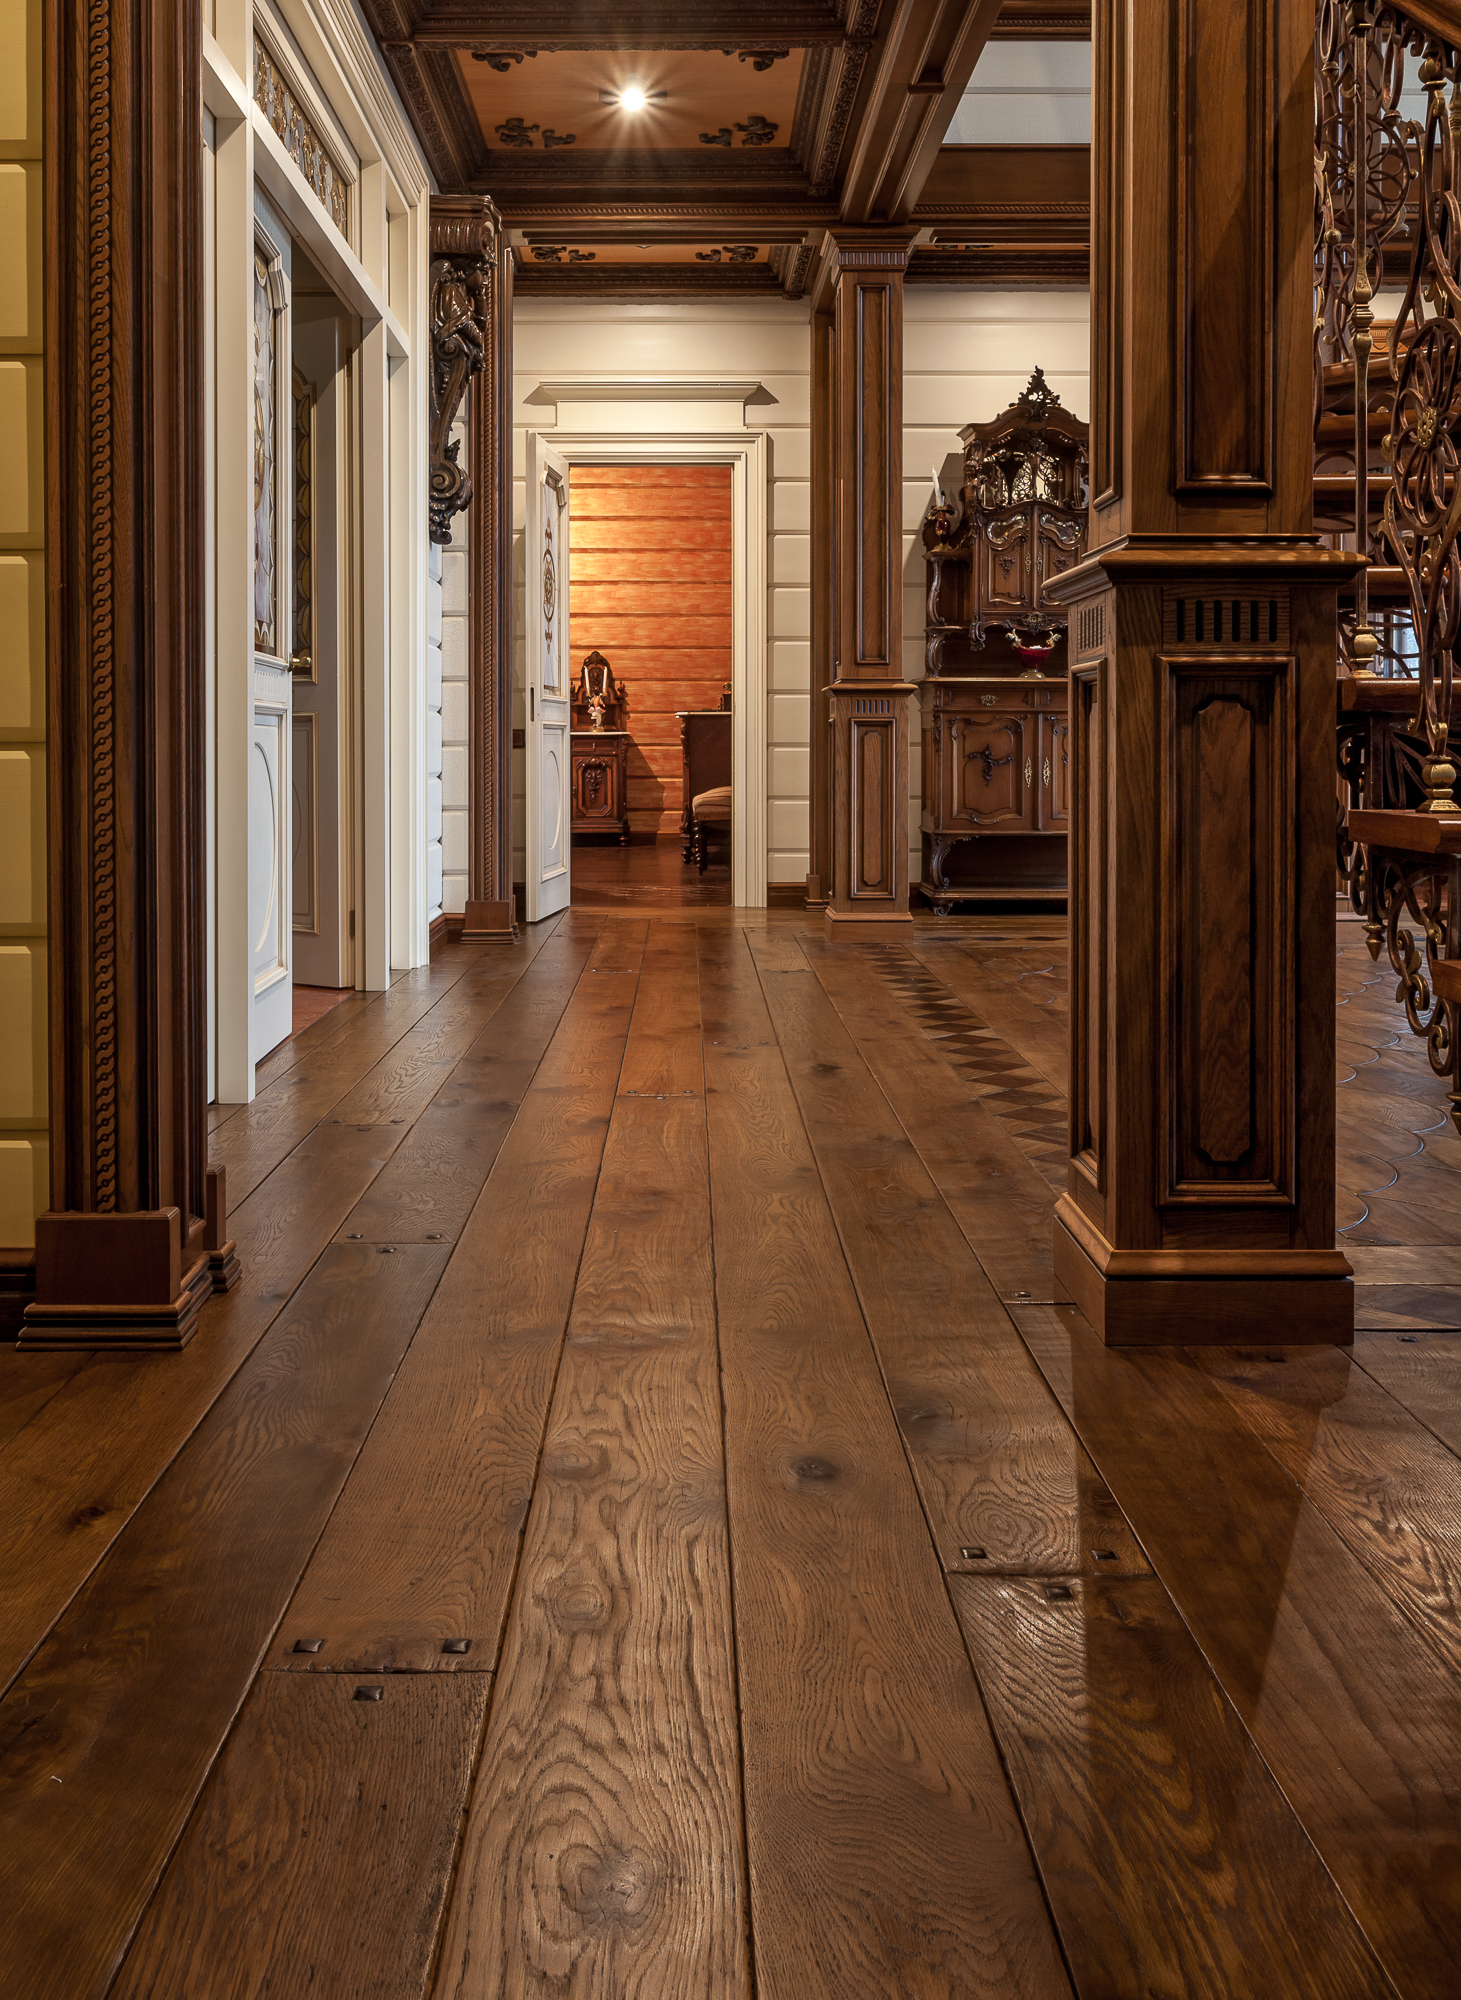 Custom made dovetail pattern and complementary borders and wide planks in reclaimed oak, antiqued, stained and burnished with vegetable oils and waxed with beeswax.